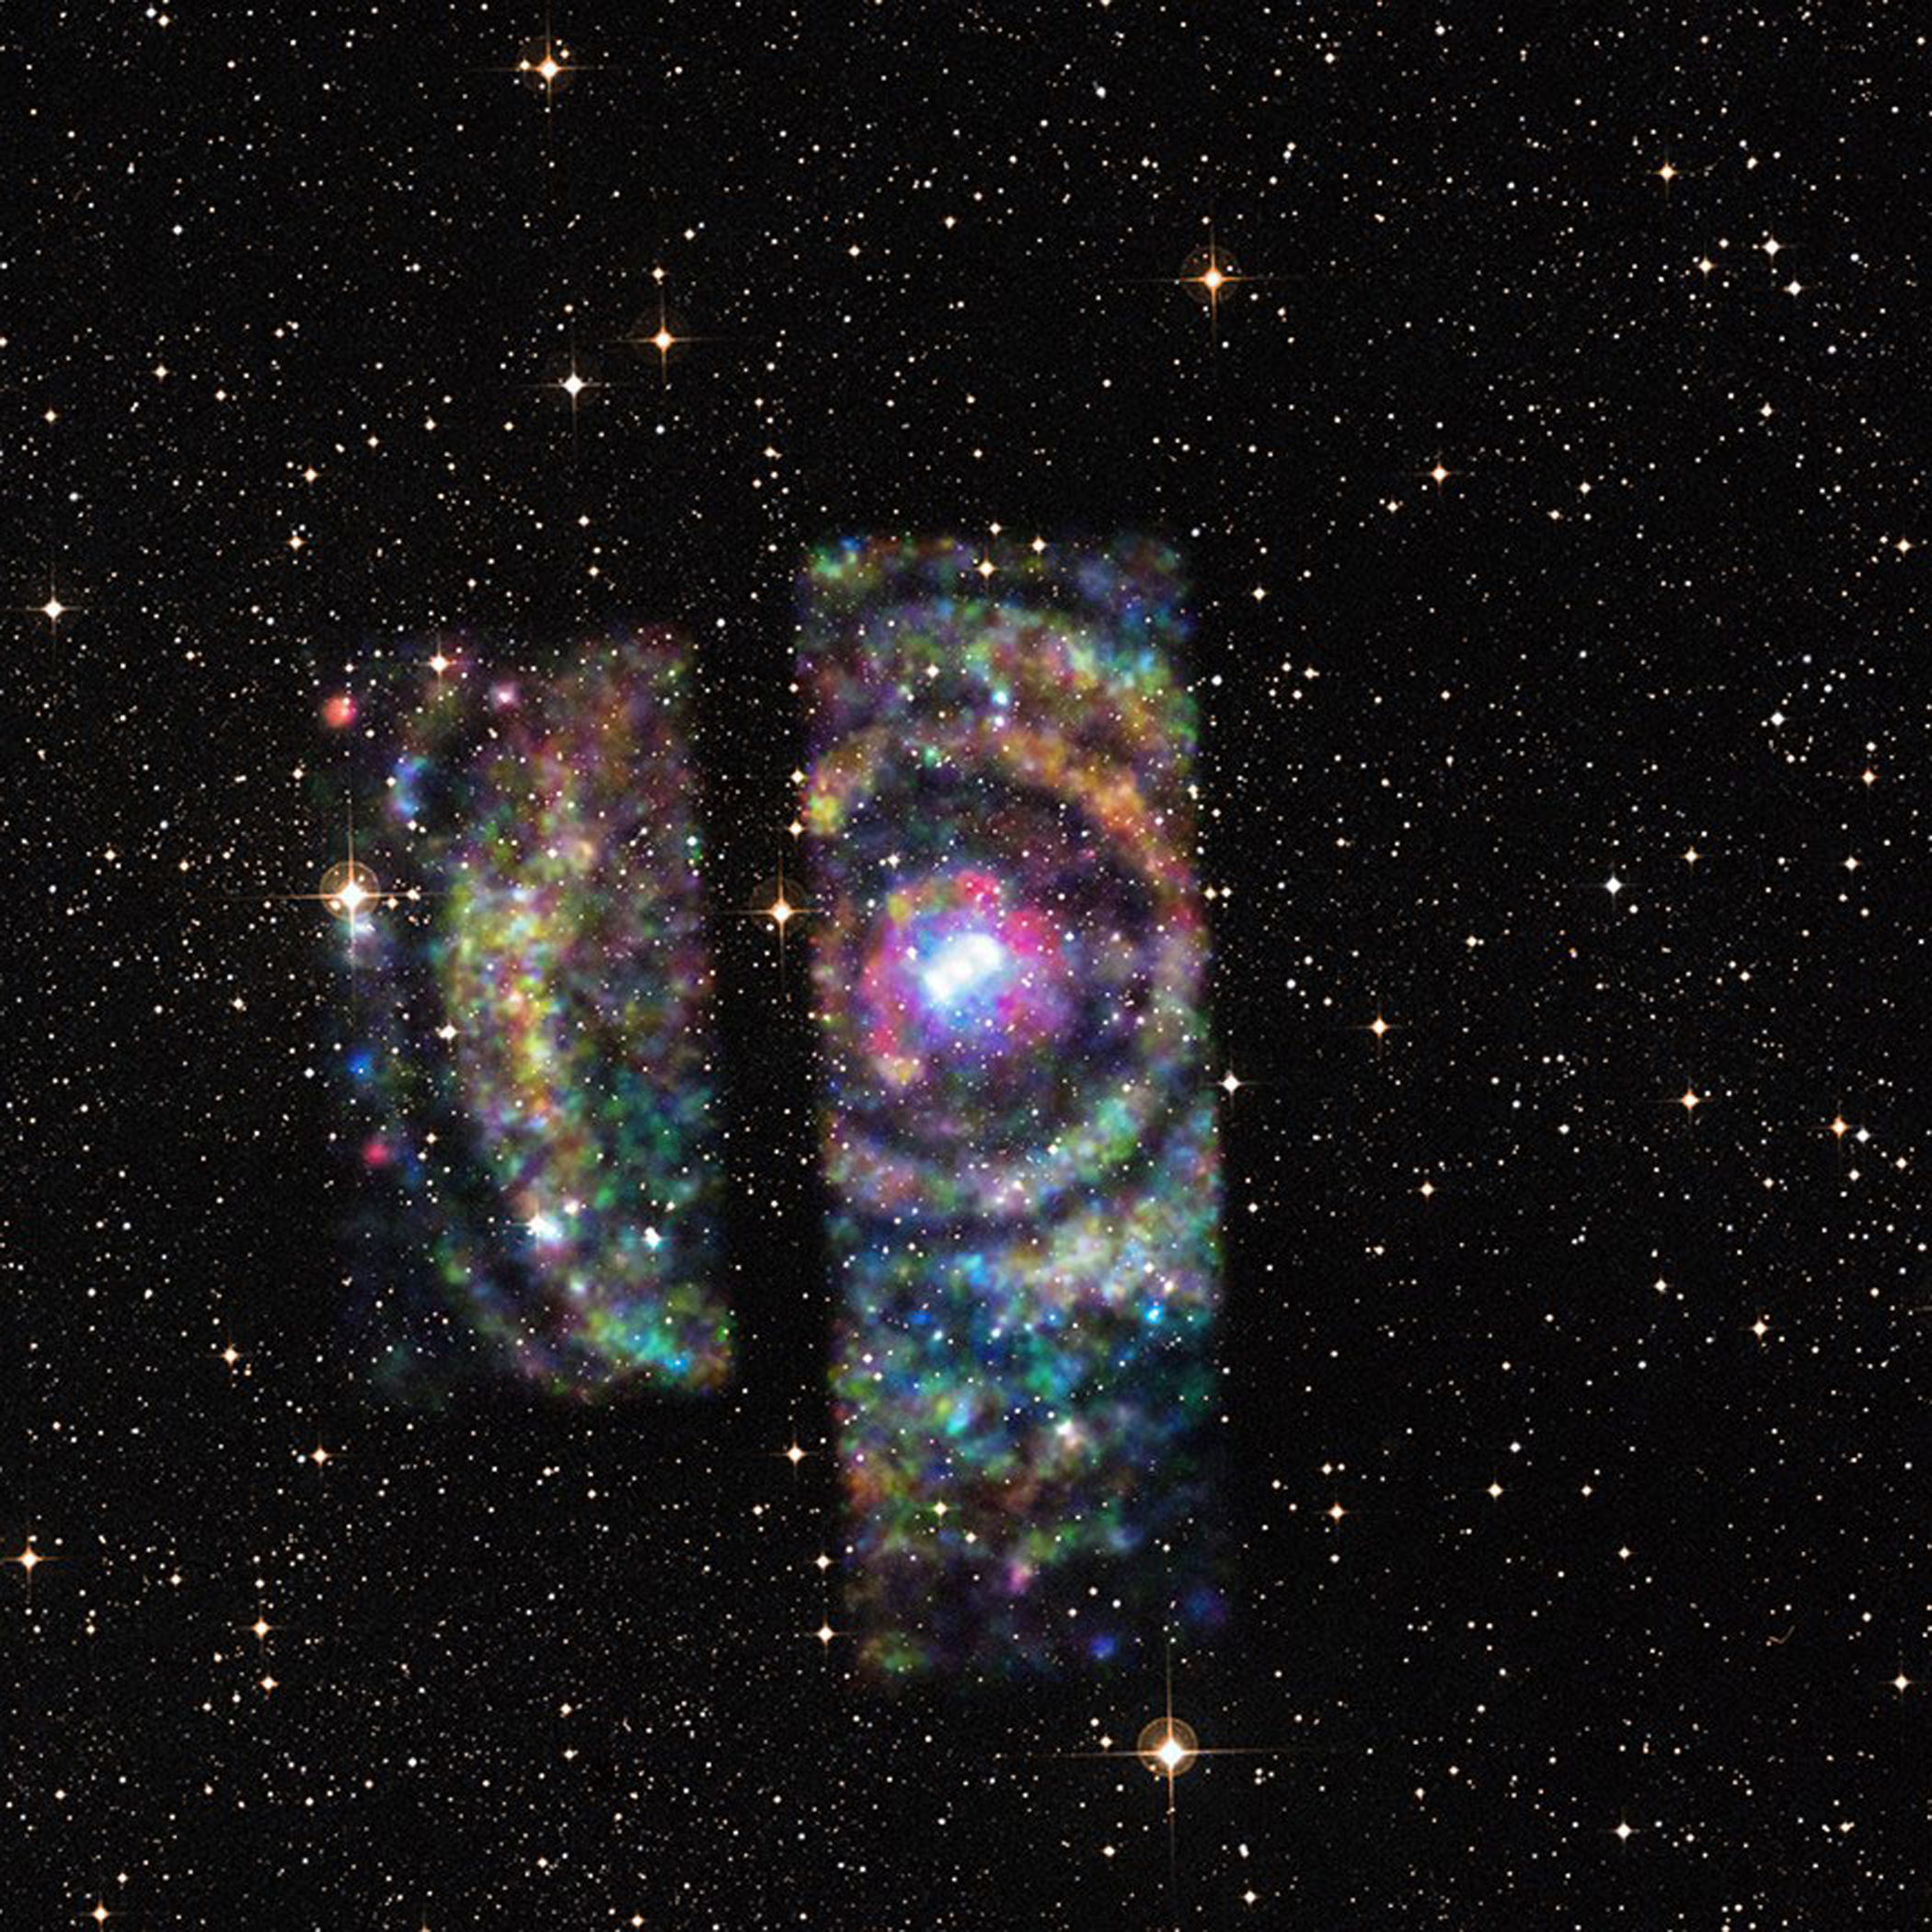 Circinus X-1 is an X-ray binary star known for its erratic variability can be seen in this photo released on June 23, 2015.  Within the system, a dense neutron star, the collapsed remnant of a supernova explosion, orbits with a more ordinary stellar companion Circinus X-1 30,700 light-years away.